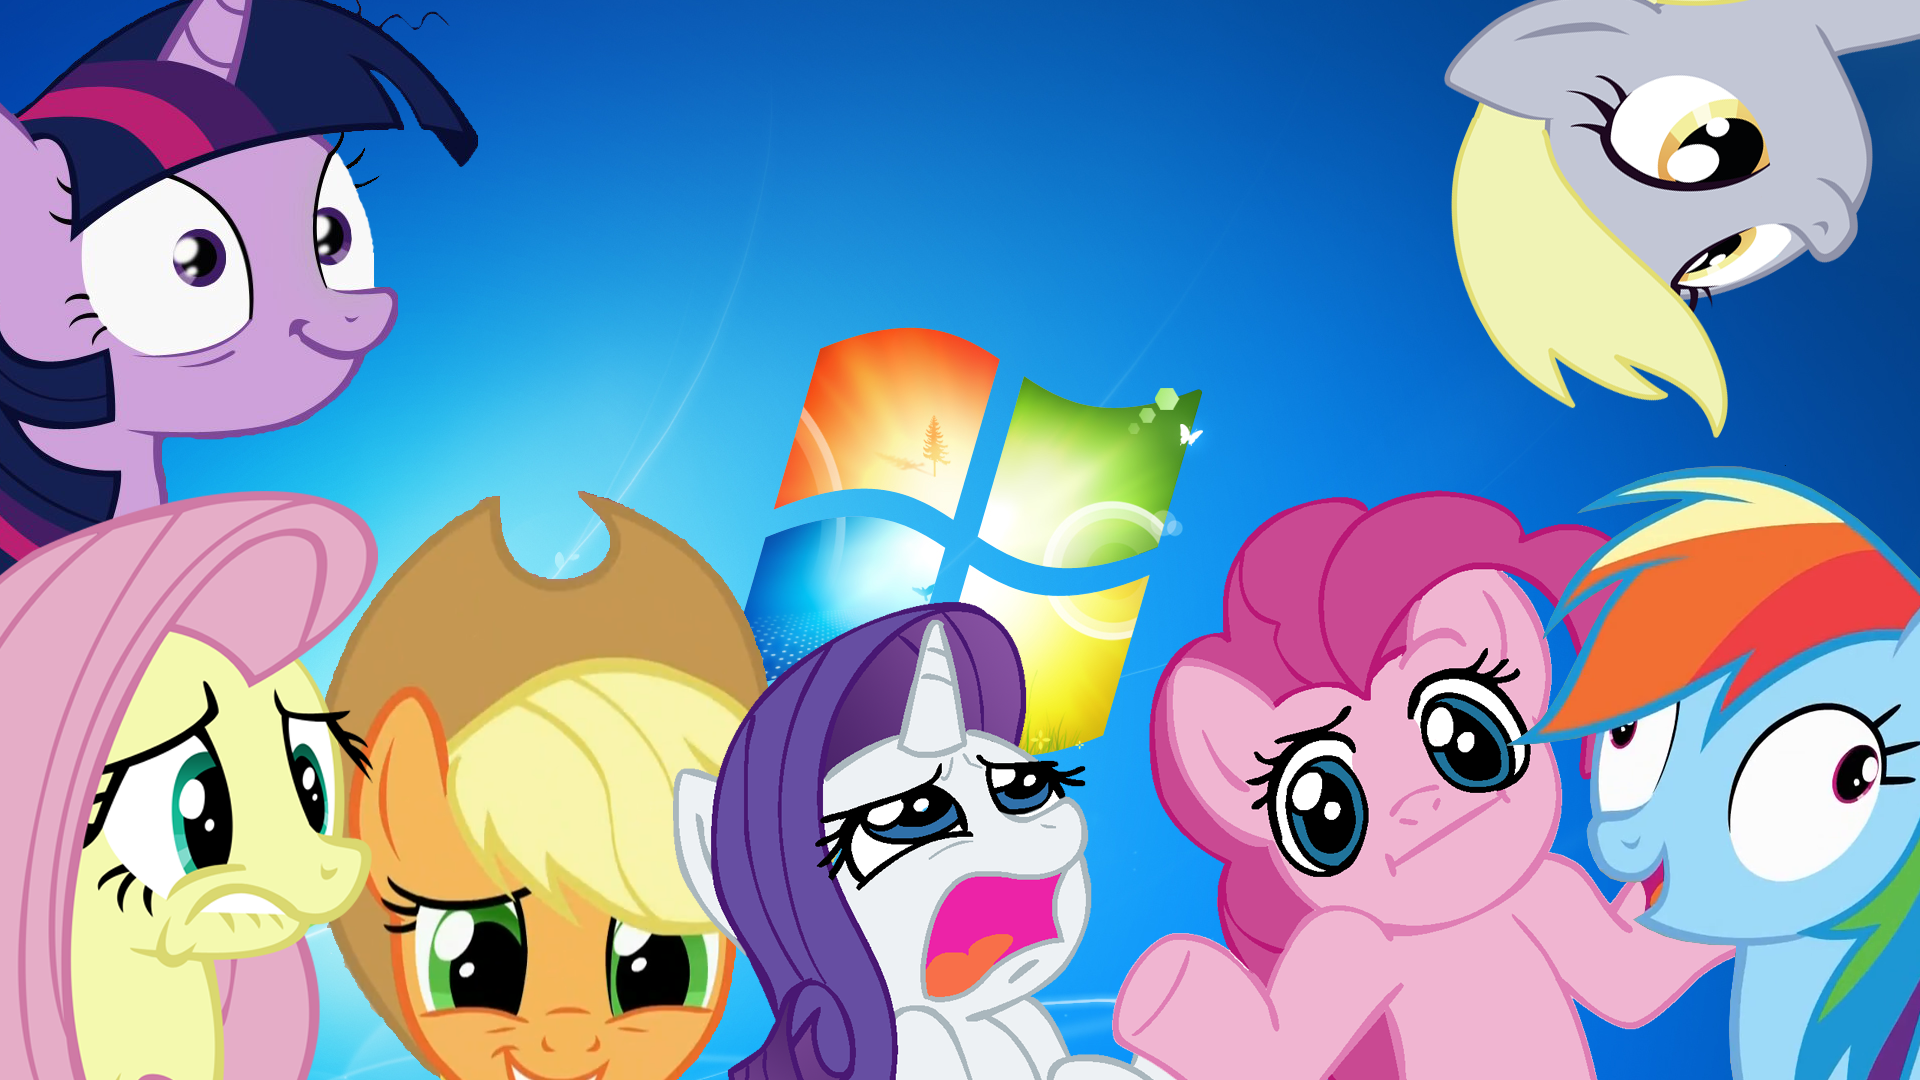 Free Download My Little Pony Hd Wallpapers For Desktop Download